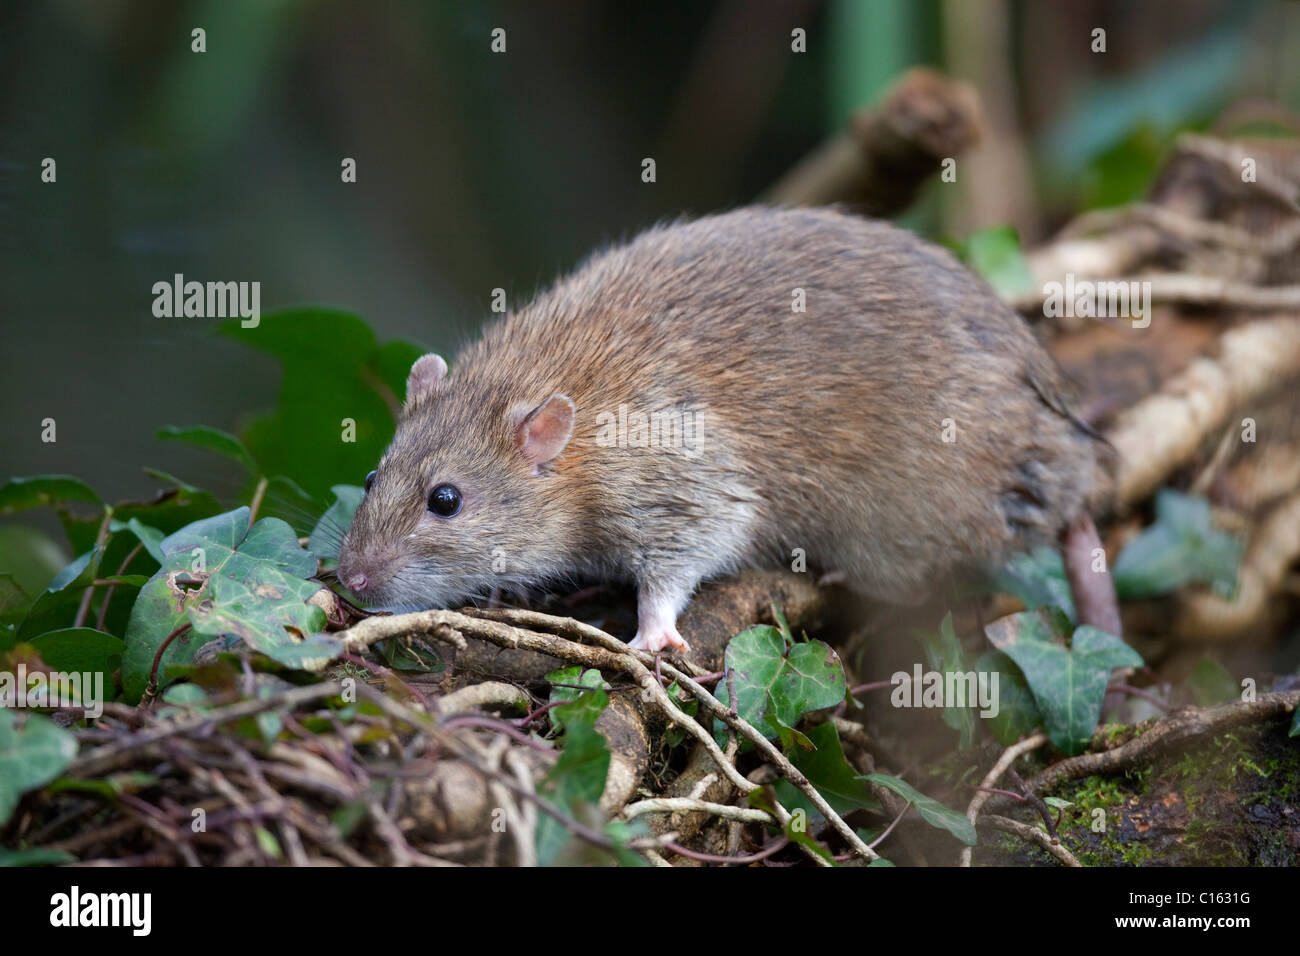 Brown Rat; Rattus norvegicus; climbing on vegetation; Cornwall; UK - Stock Image